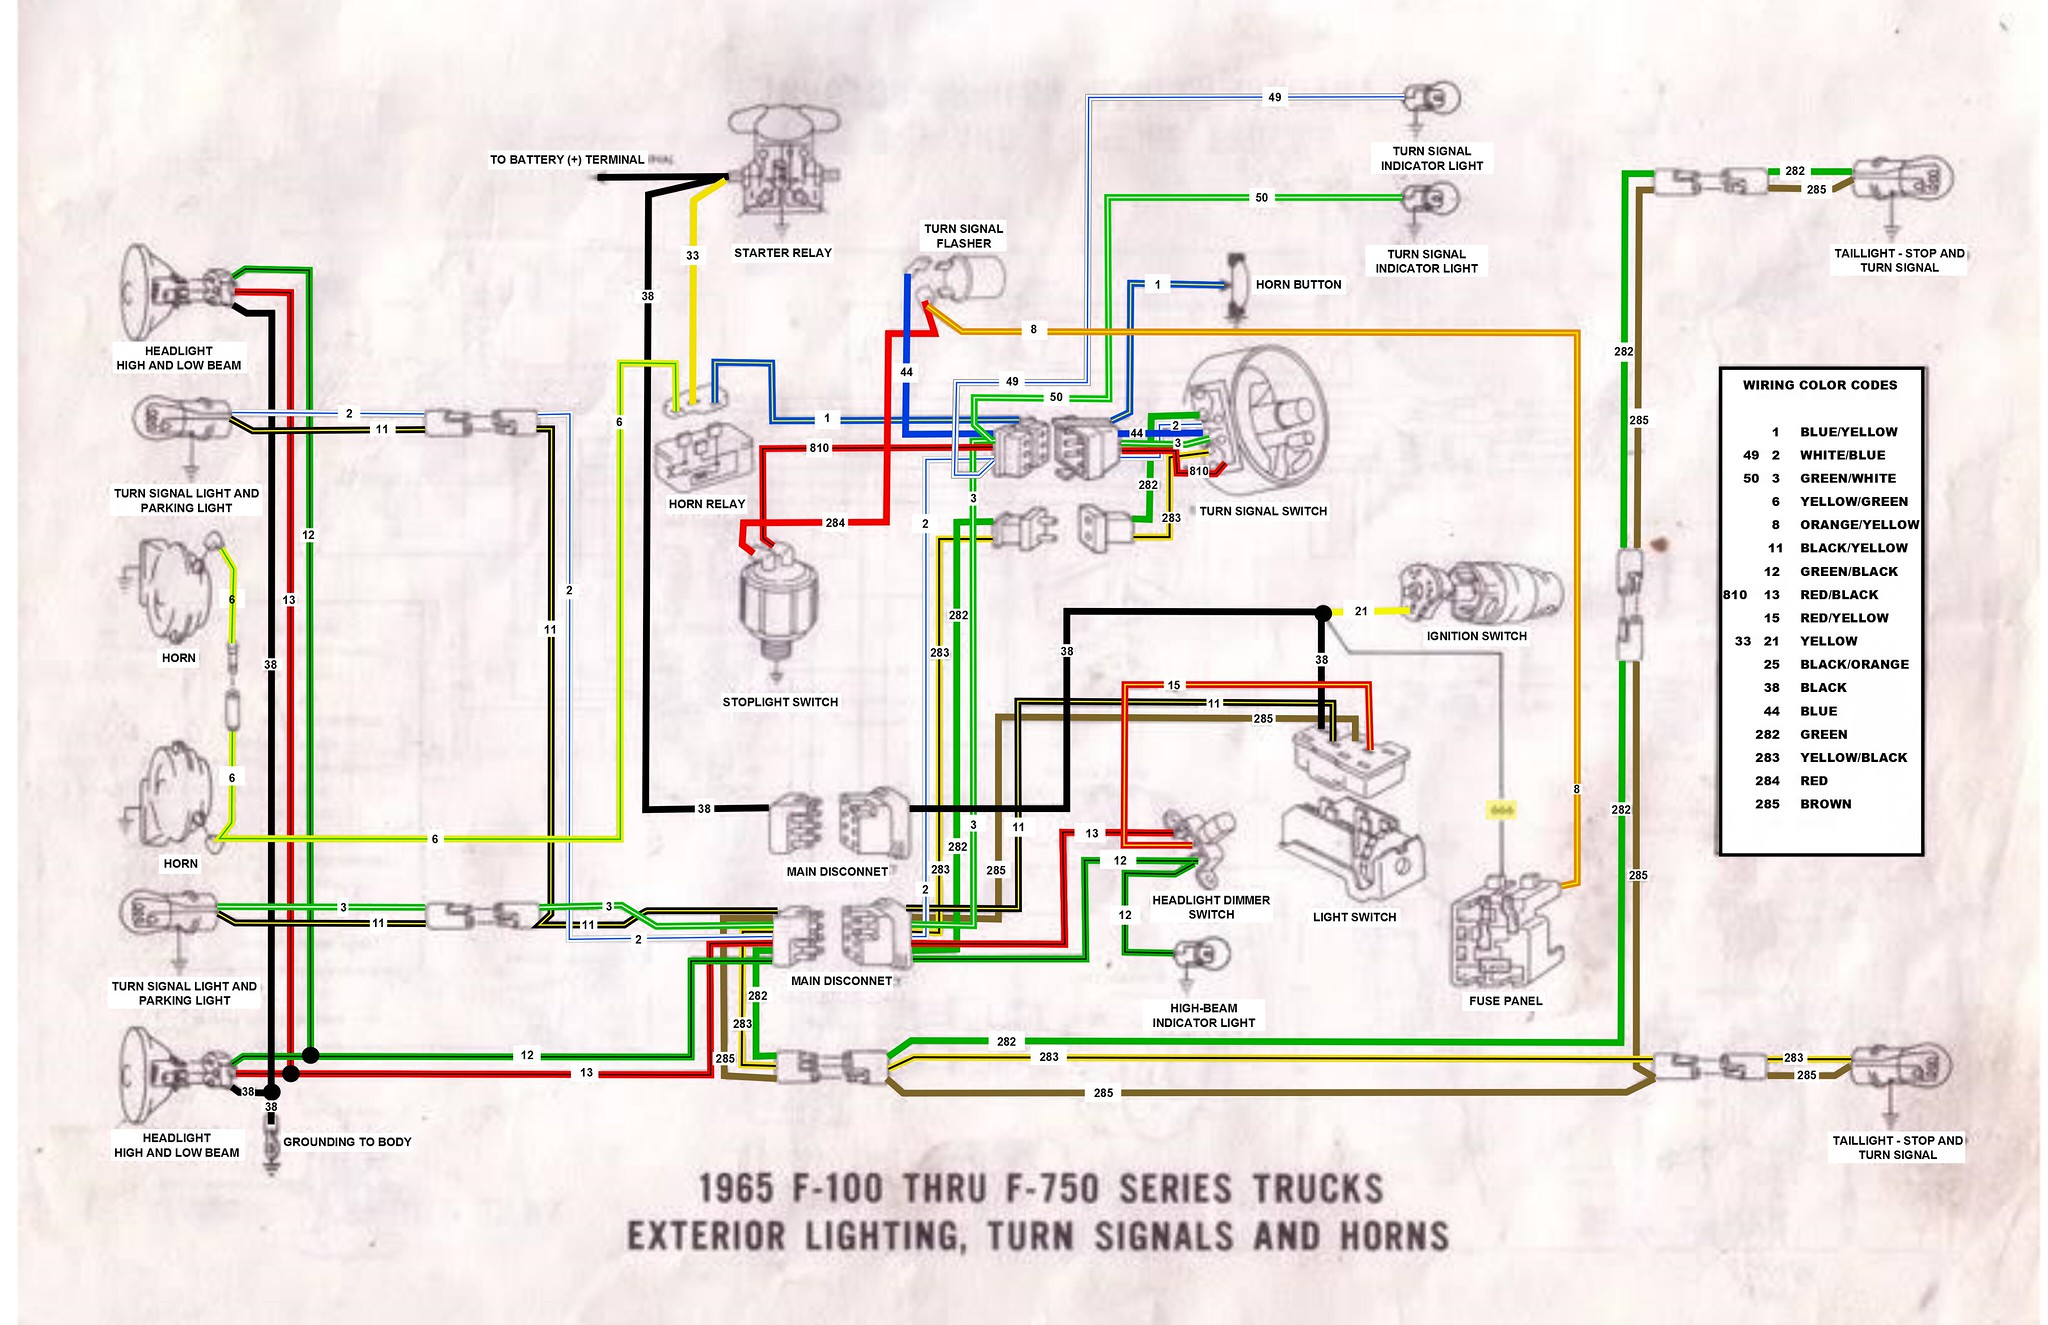 Wiring Diagram For A 65 Ford F100 Auto Electrical Ktm 640 Lc4 Supermoto F750 Exterior Truck